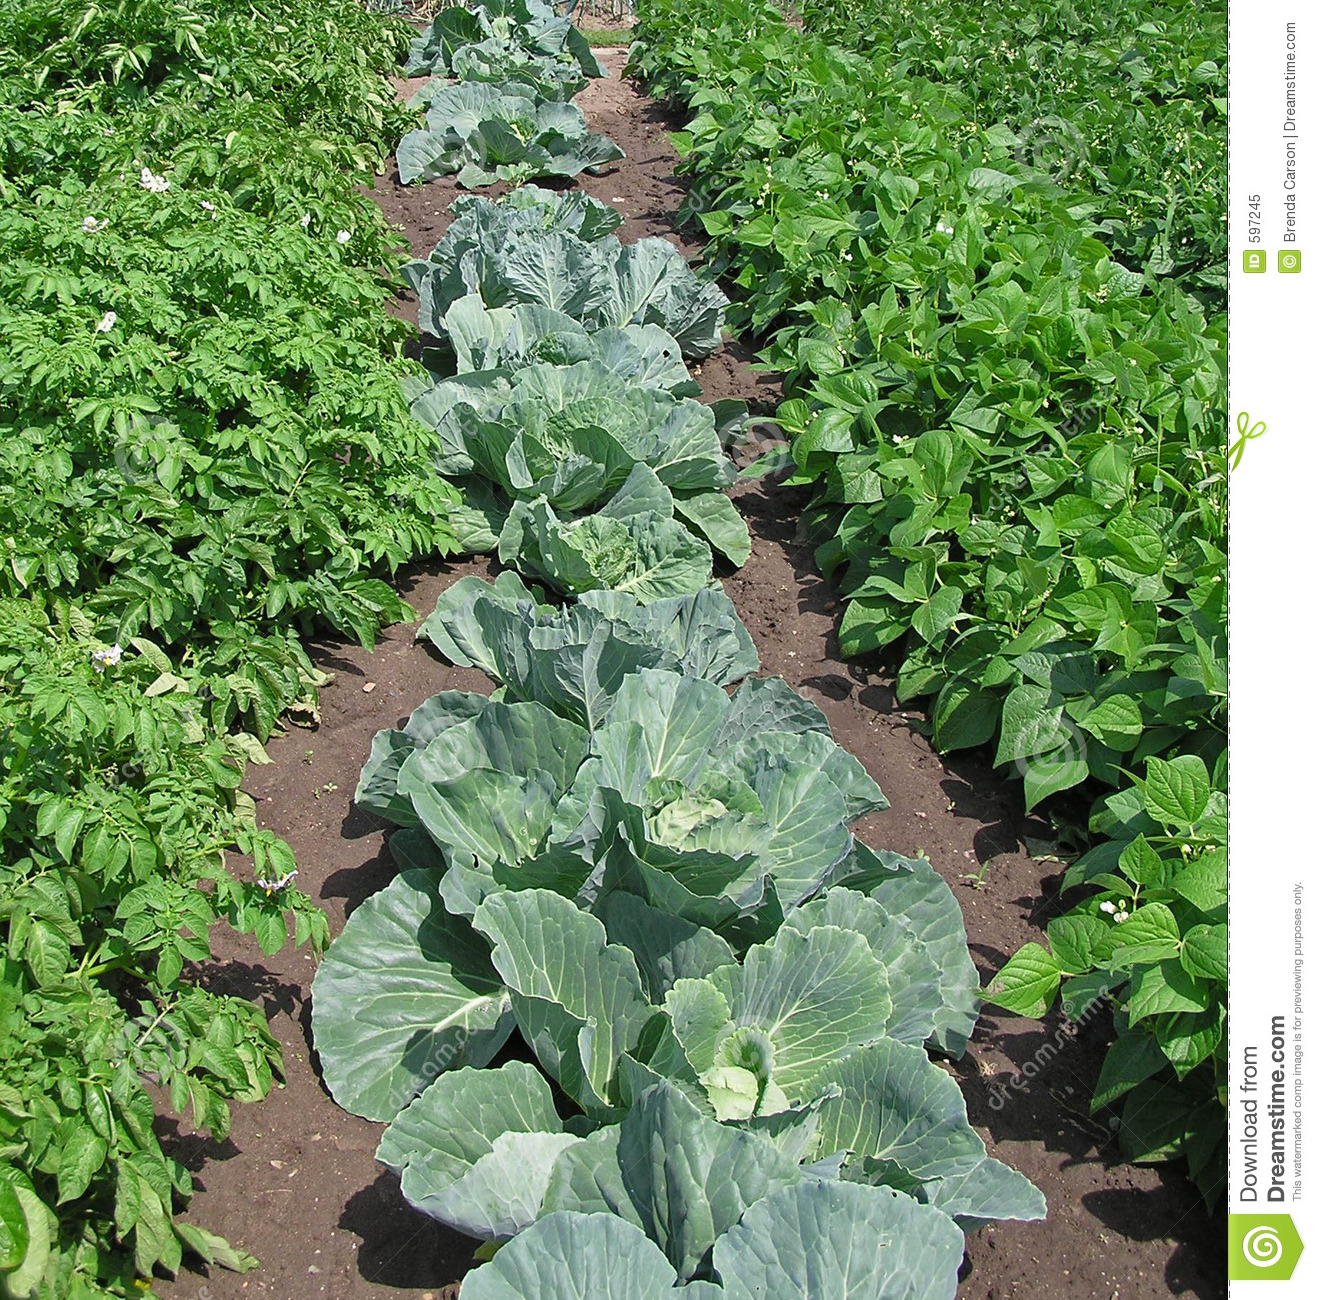 Garden row clipart picture freeuse Vegetable Garden Rows Clipart - Clipart Kid picture freeuse